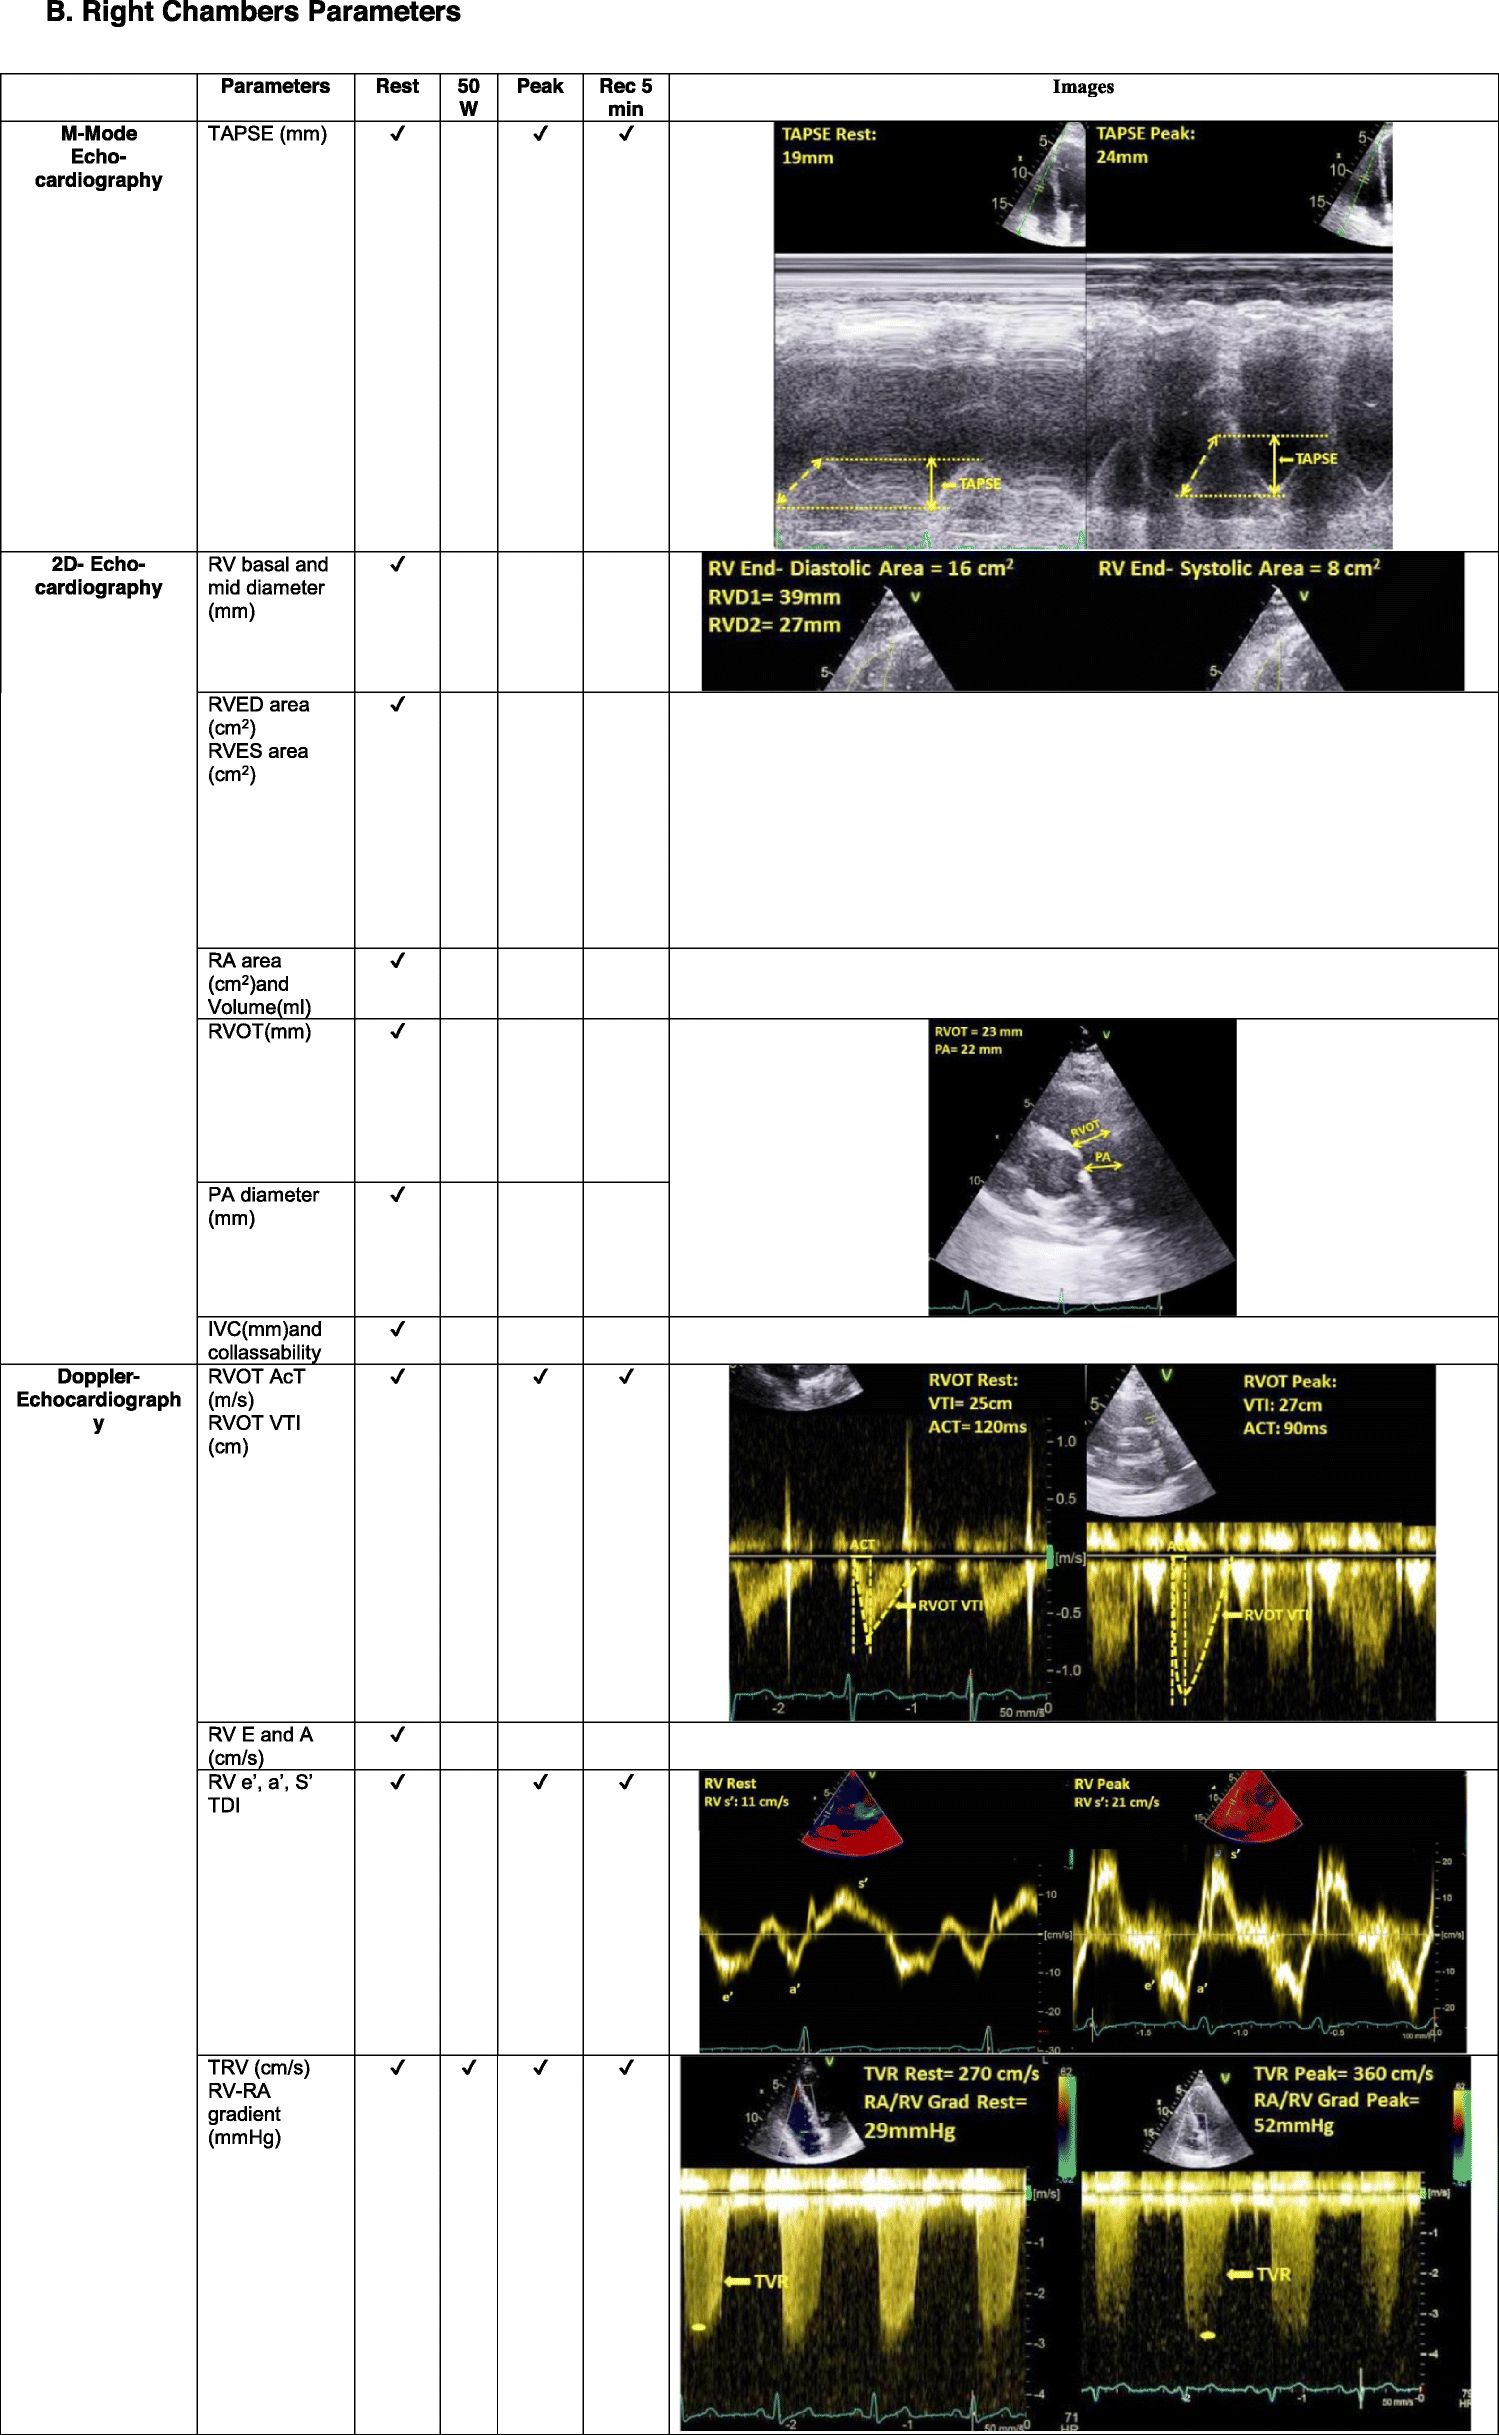 https://static-content.springer.com/image/art%3A10.1186%2Fs12947-021-00238-1/MediaObjects/12947_2021_238_Tab2b_HTML.png